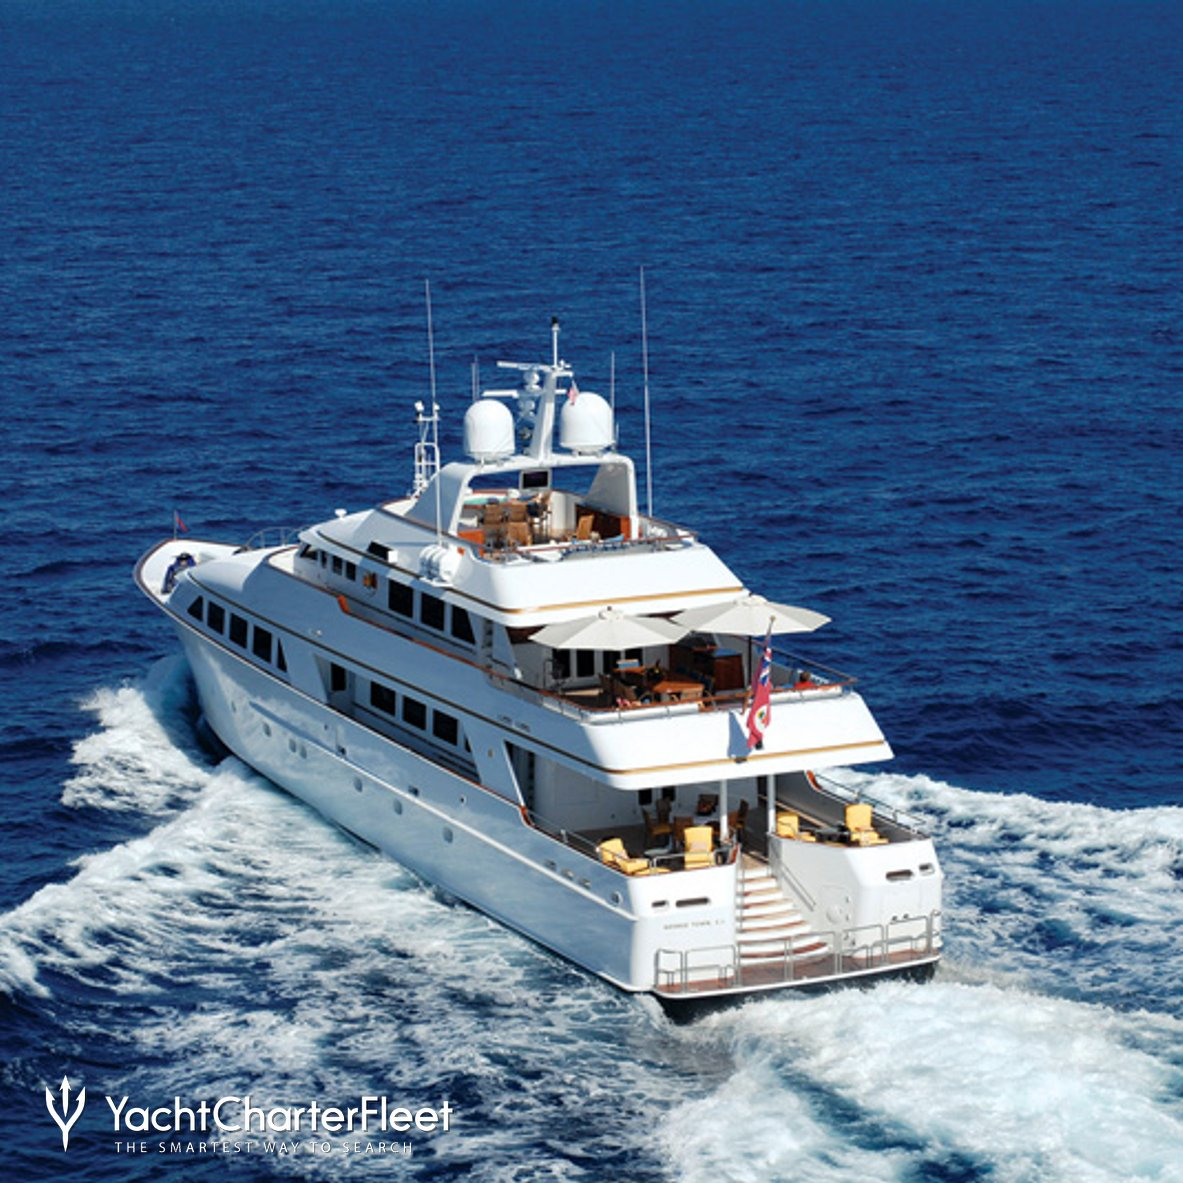 Lady J Yacht Photos Ex Pure Bliss 43m Luxury Motor